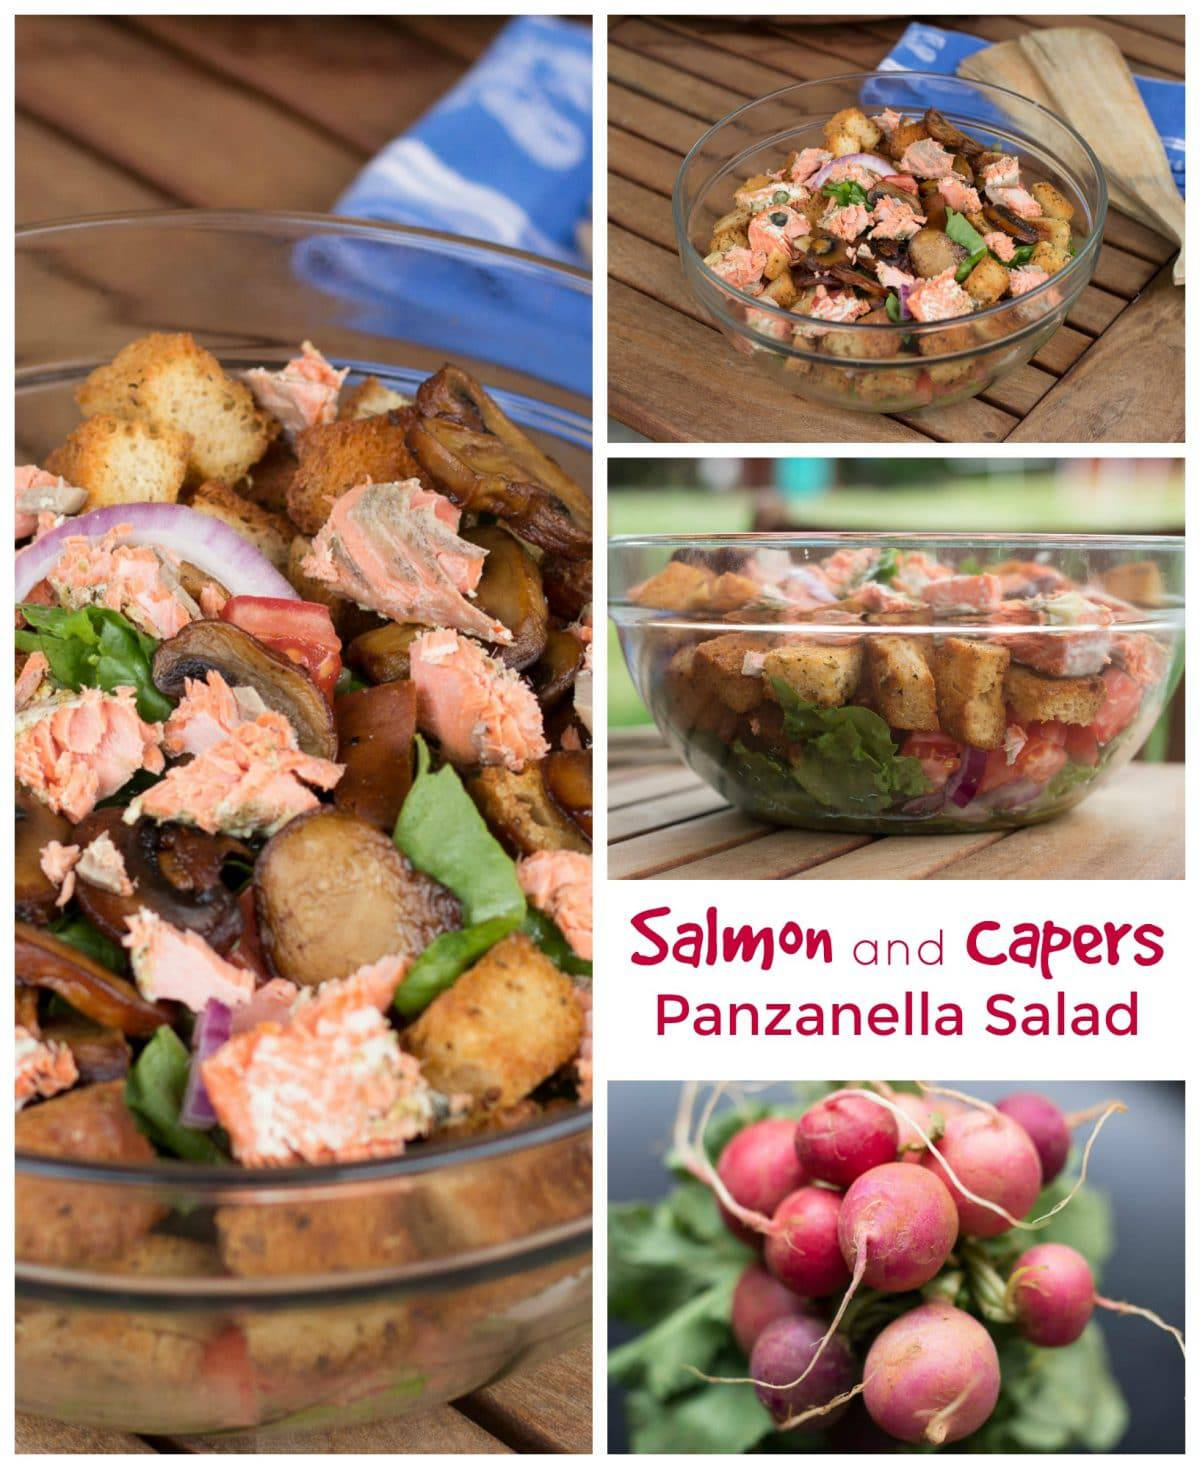 Salmon and Capers Panzanella Salad #SundaySupper || Erin Brighton | gluten free | salads | easy dinners